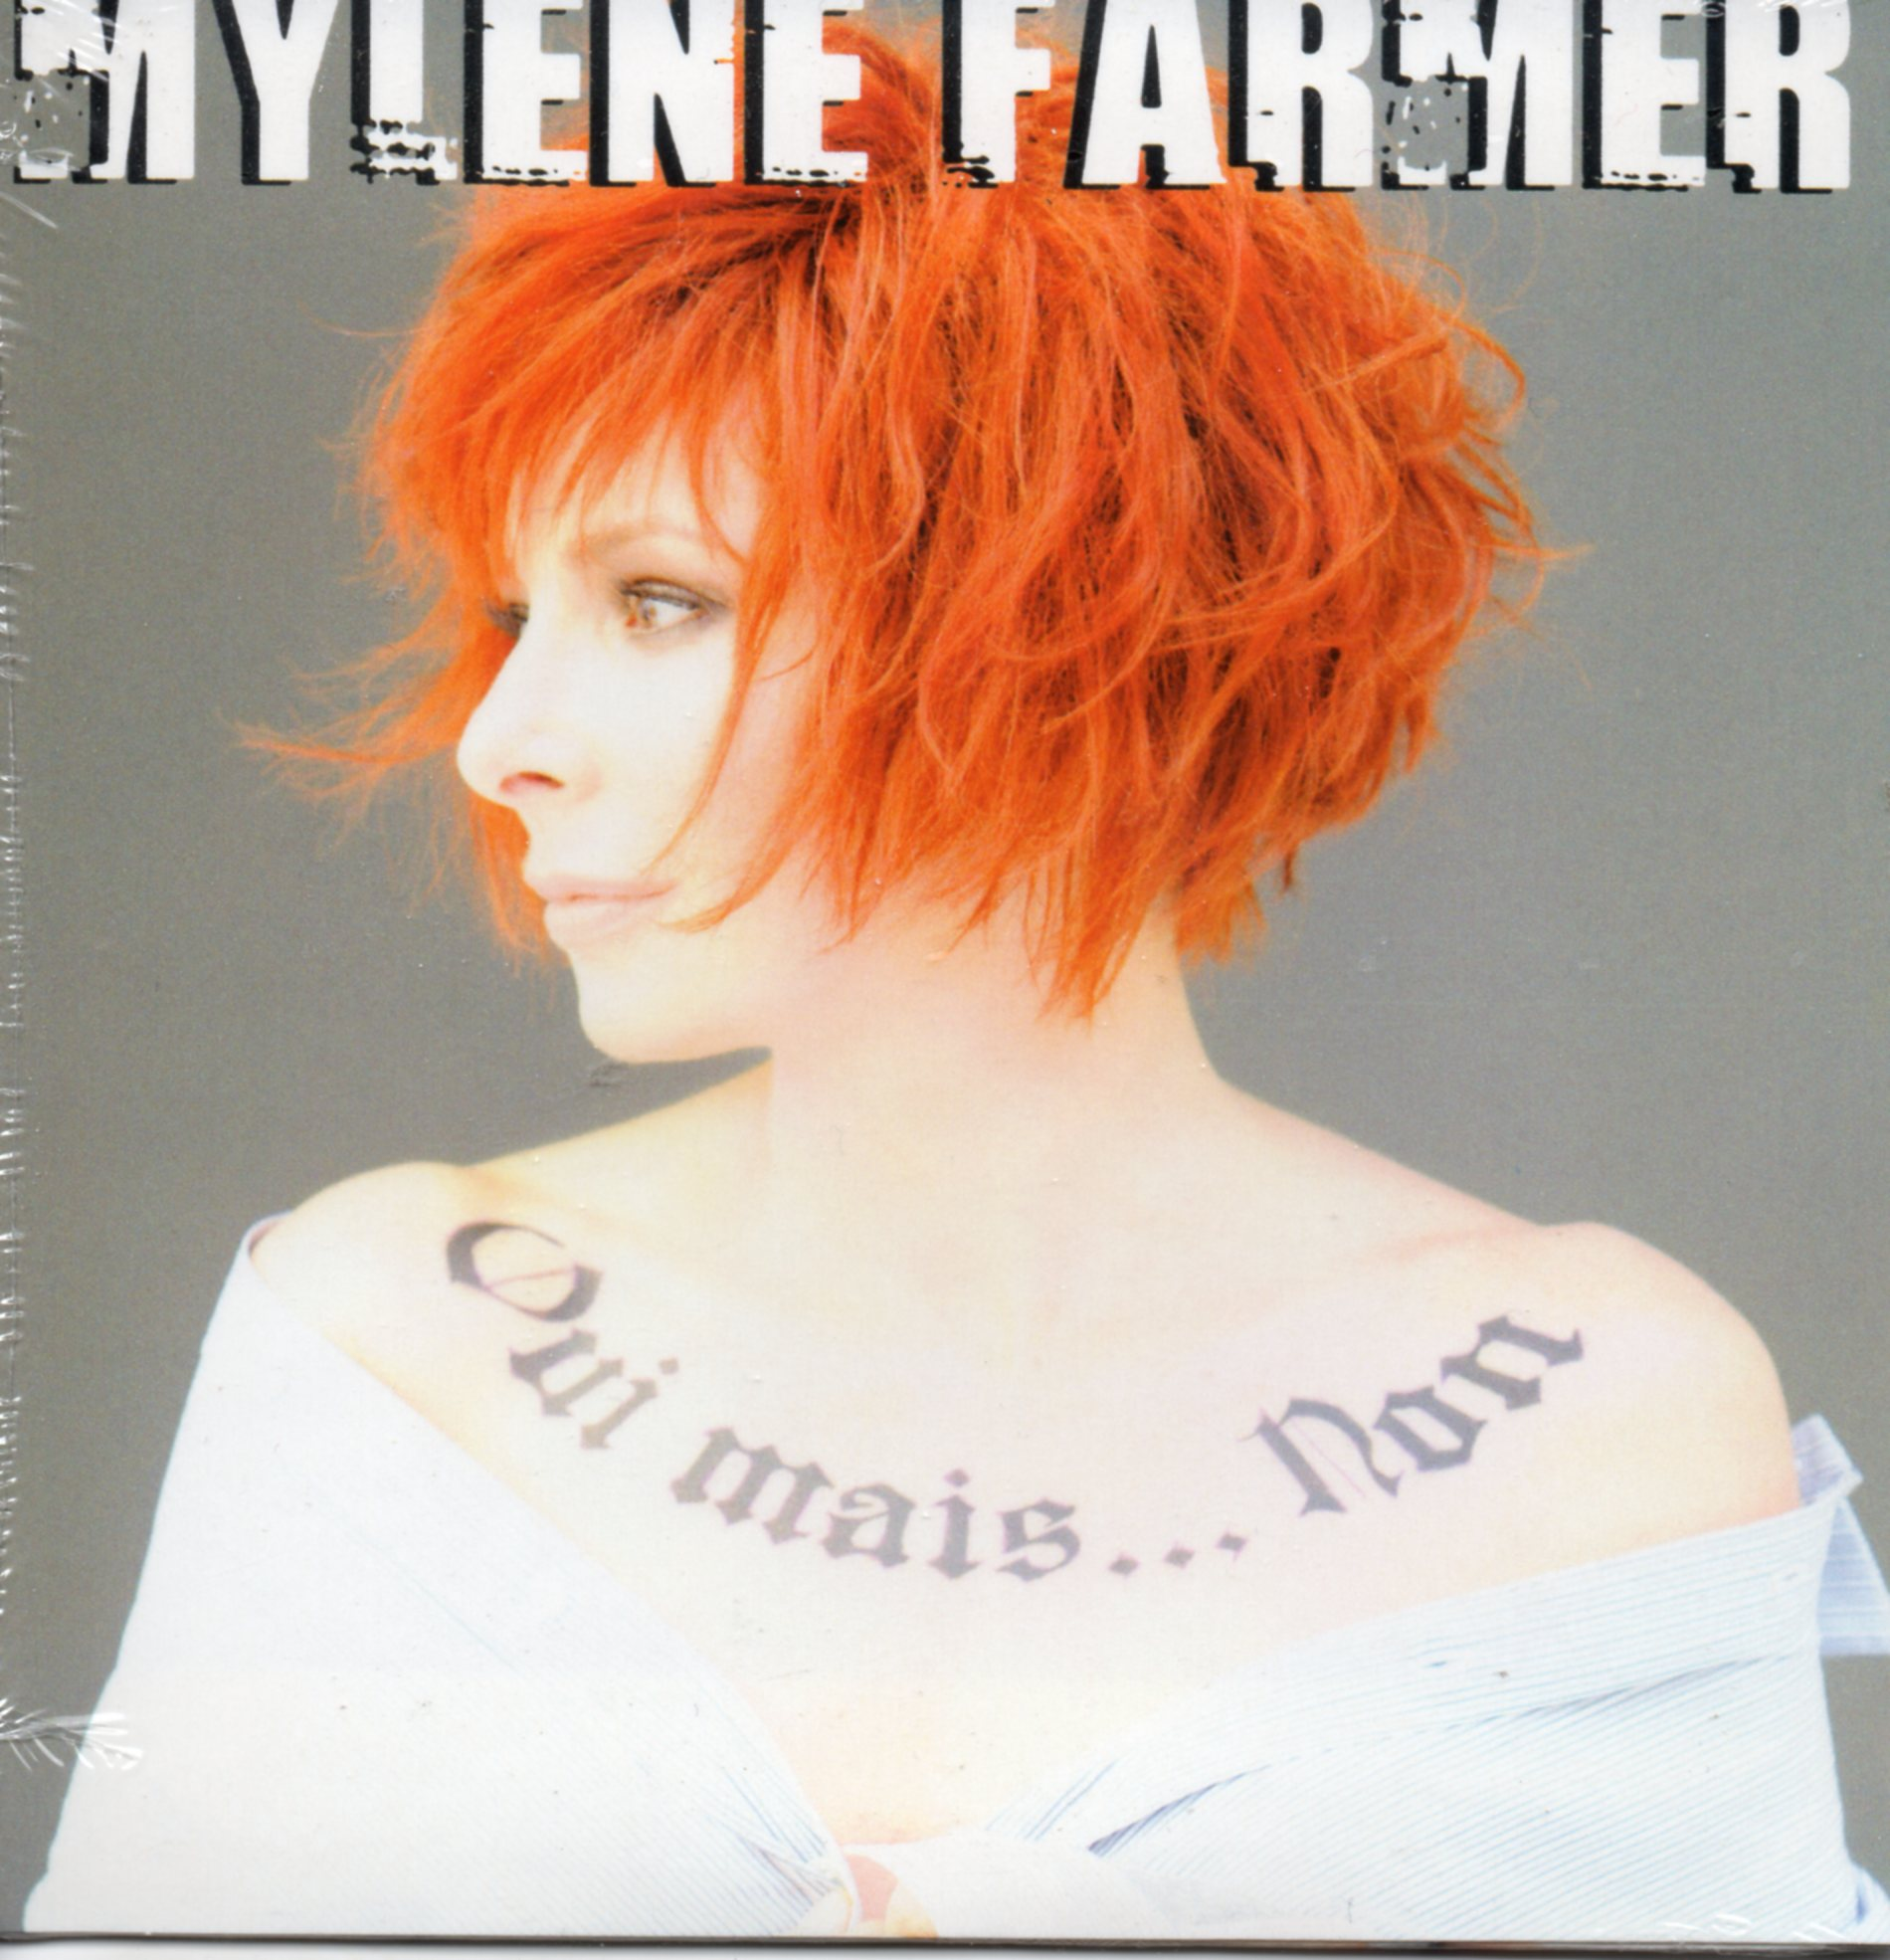 MYLÈNE FARMER - Oui mais... non 2-track CARD SLEEVE - CD single